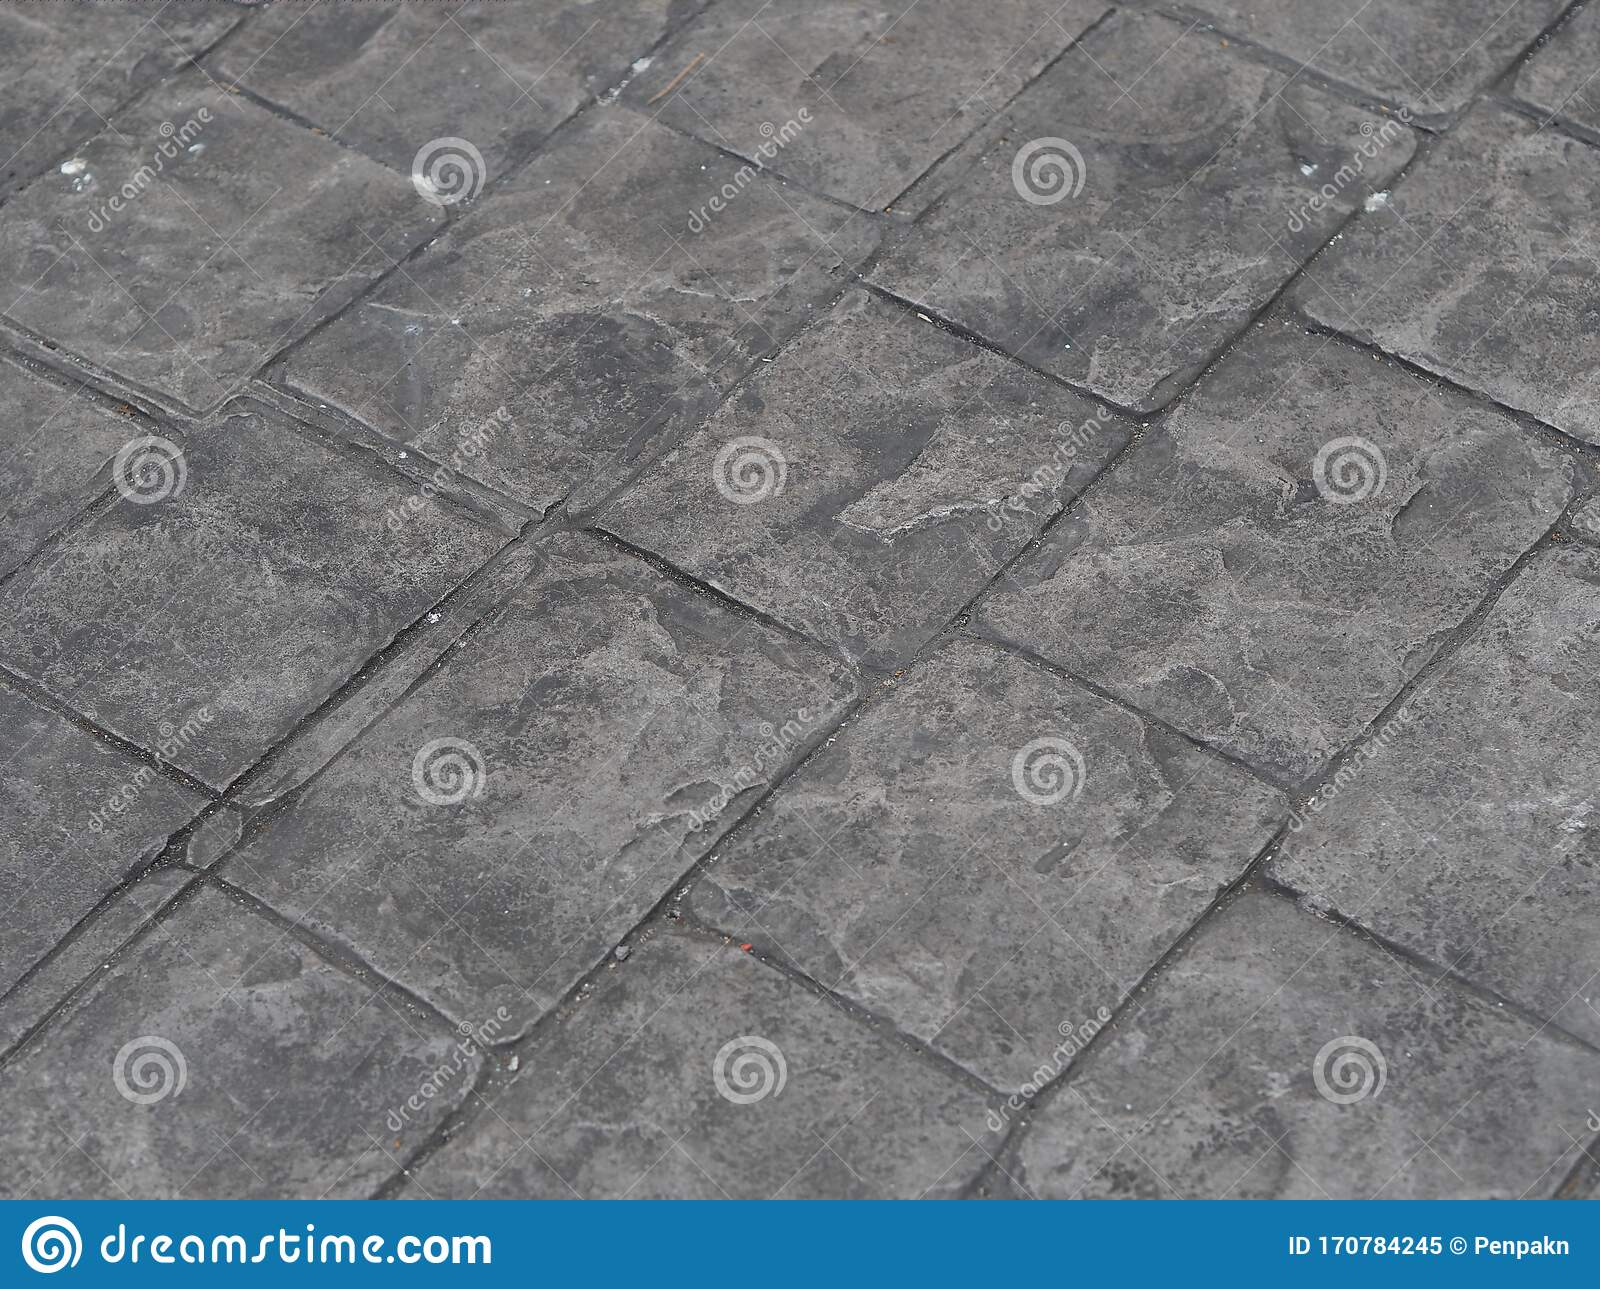 Stamp Concrete Black Color Hardener Printing Patterns On The Cement Or Mortar Surface Square Pattern Material Rough Texture Stock Image Image Of Design Finished 170784245